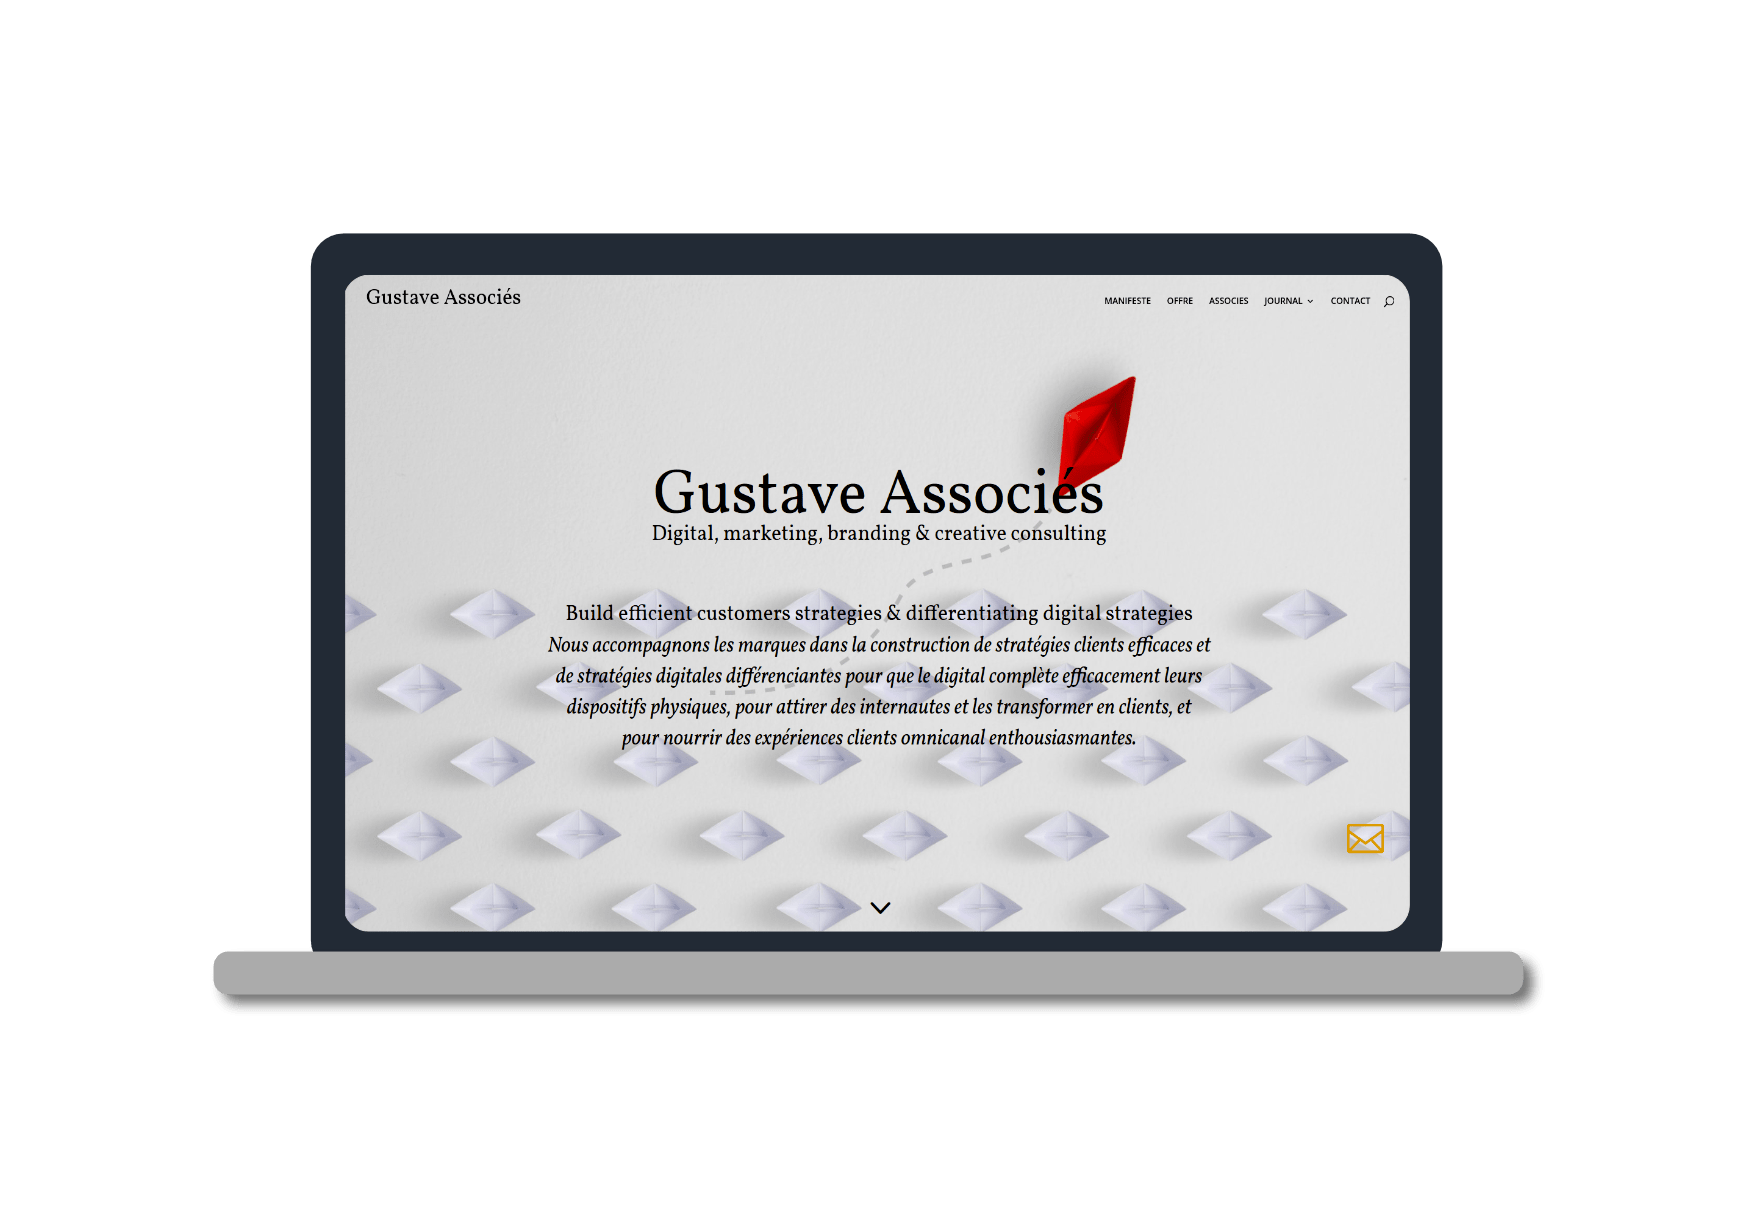 mockup macbook pro pour le site gustave associes